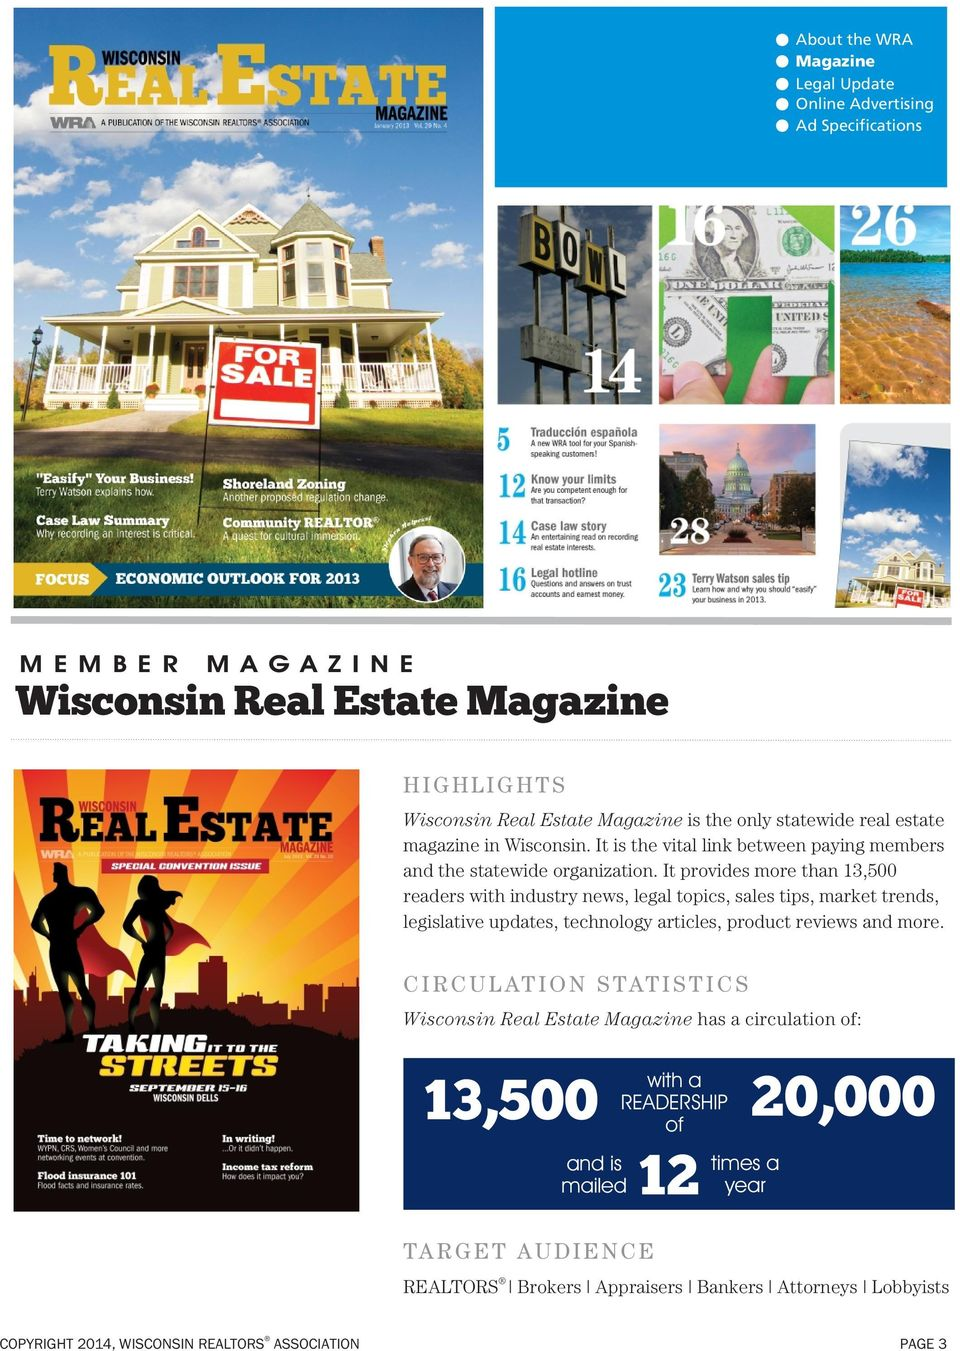 It provides more than 13,500 readers with industry news, legal topics, sales tips, market trends, legislative updates, technology articles, product